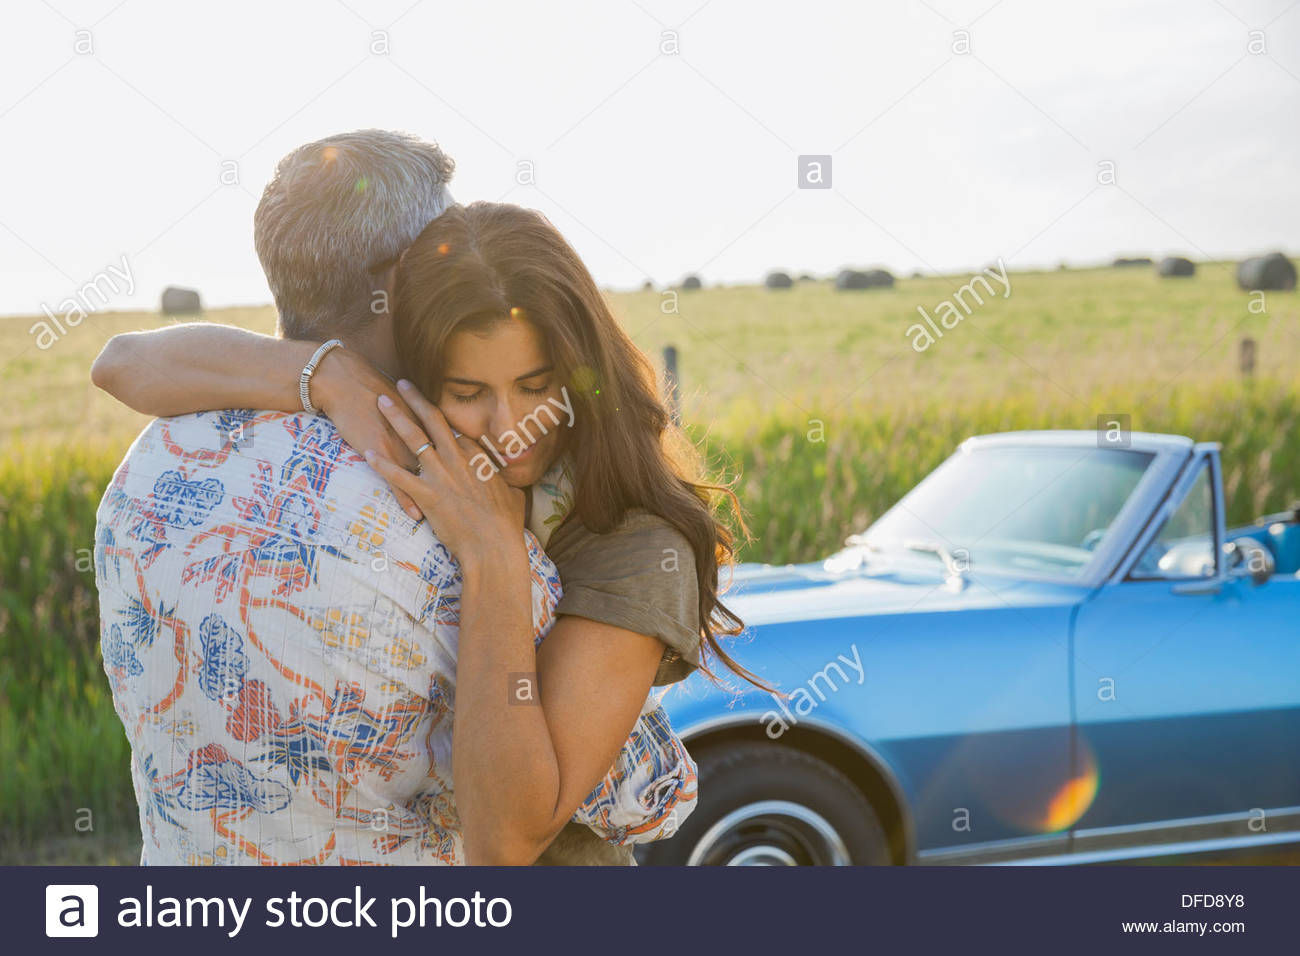 Affectionate couple hugging outdoors Photo Stock